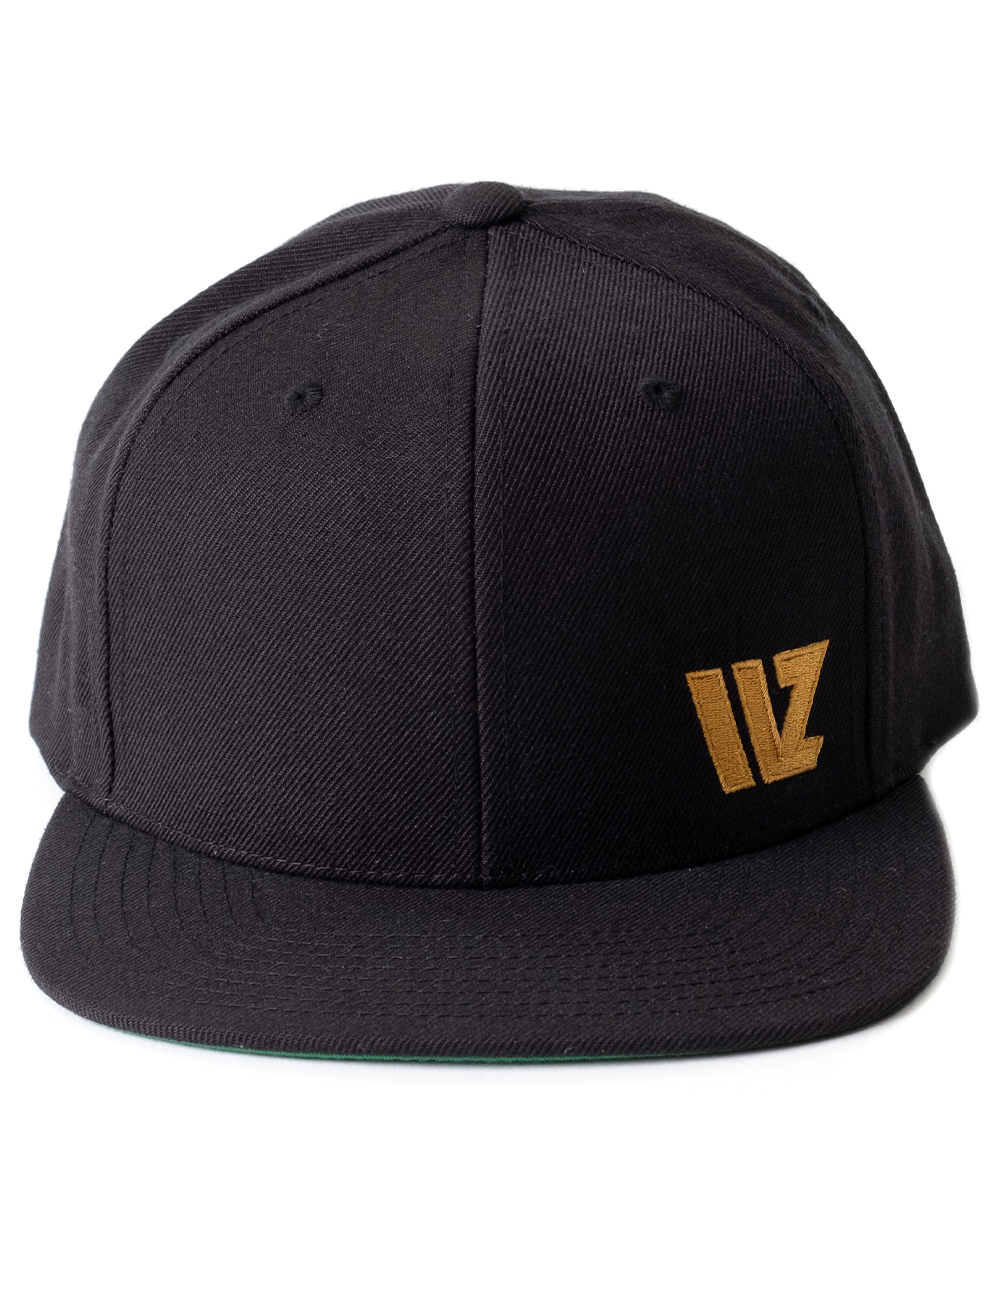 art and ink worldz embroidered cap